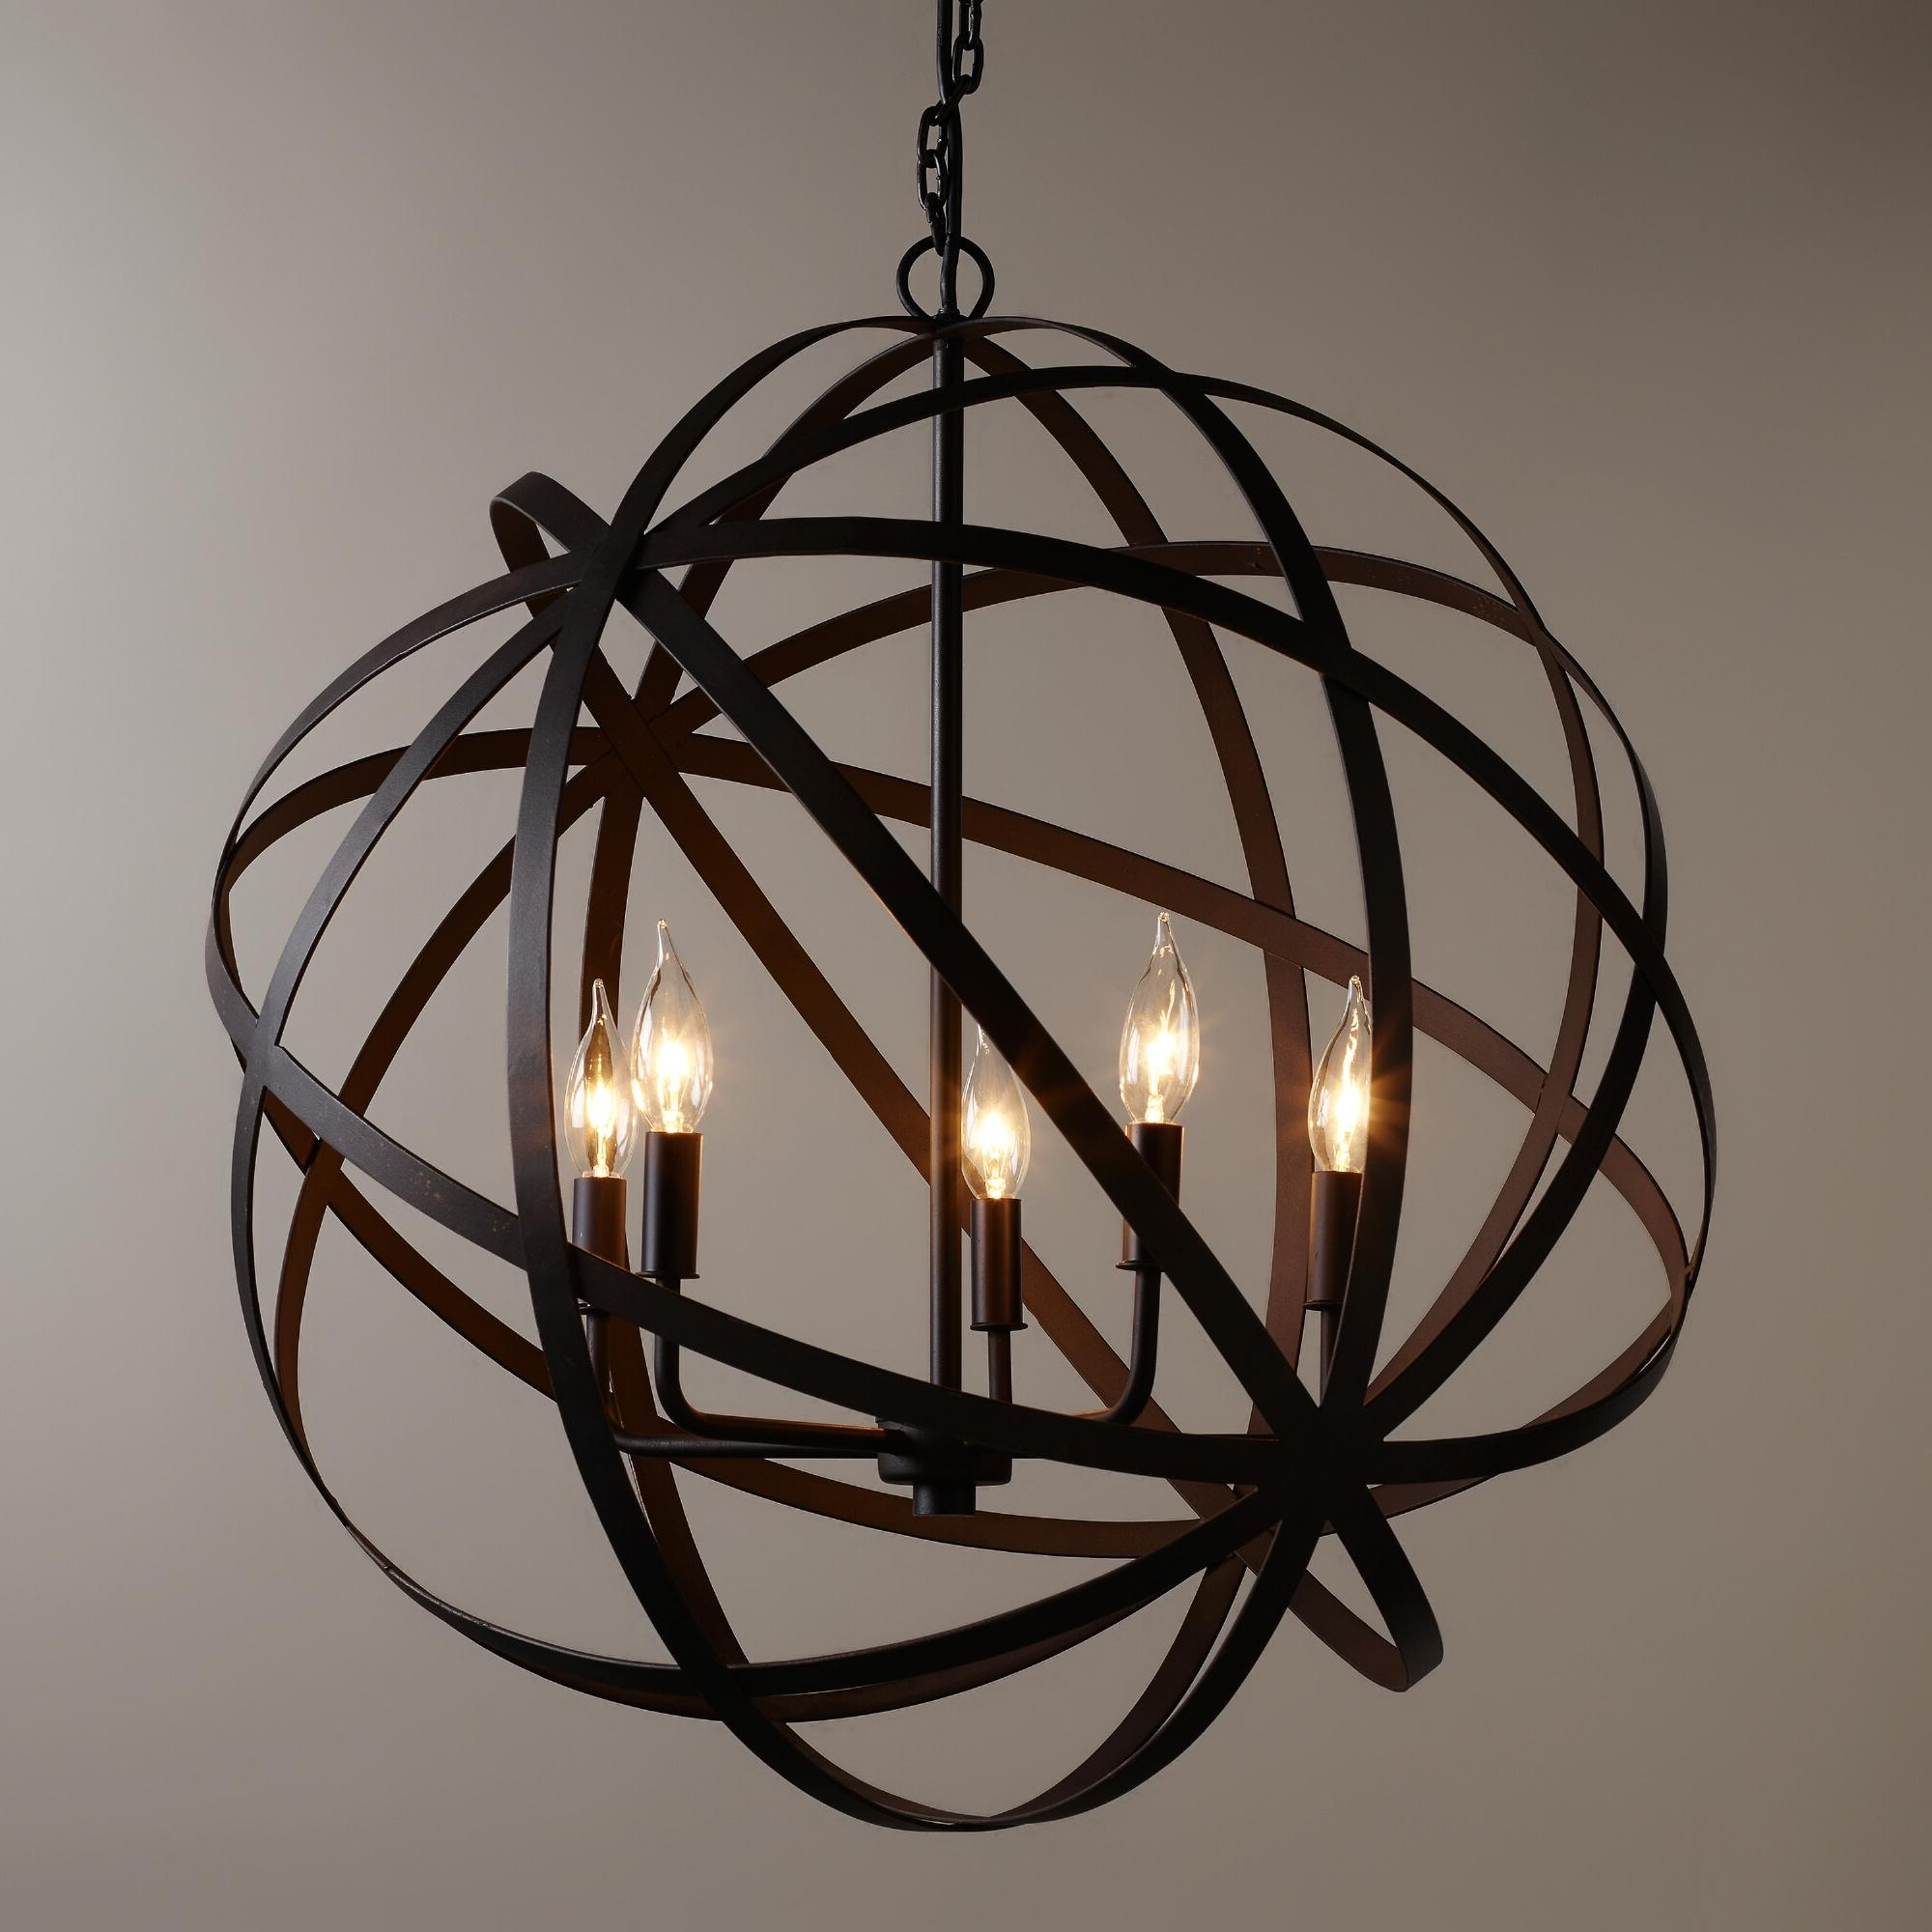 Current Light : Creative Orb Chandelier About Interior Designing Home Ideas Pertaining To Orb Chandelier (View 5 of 15)